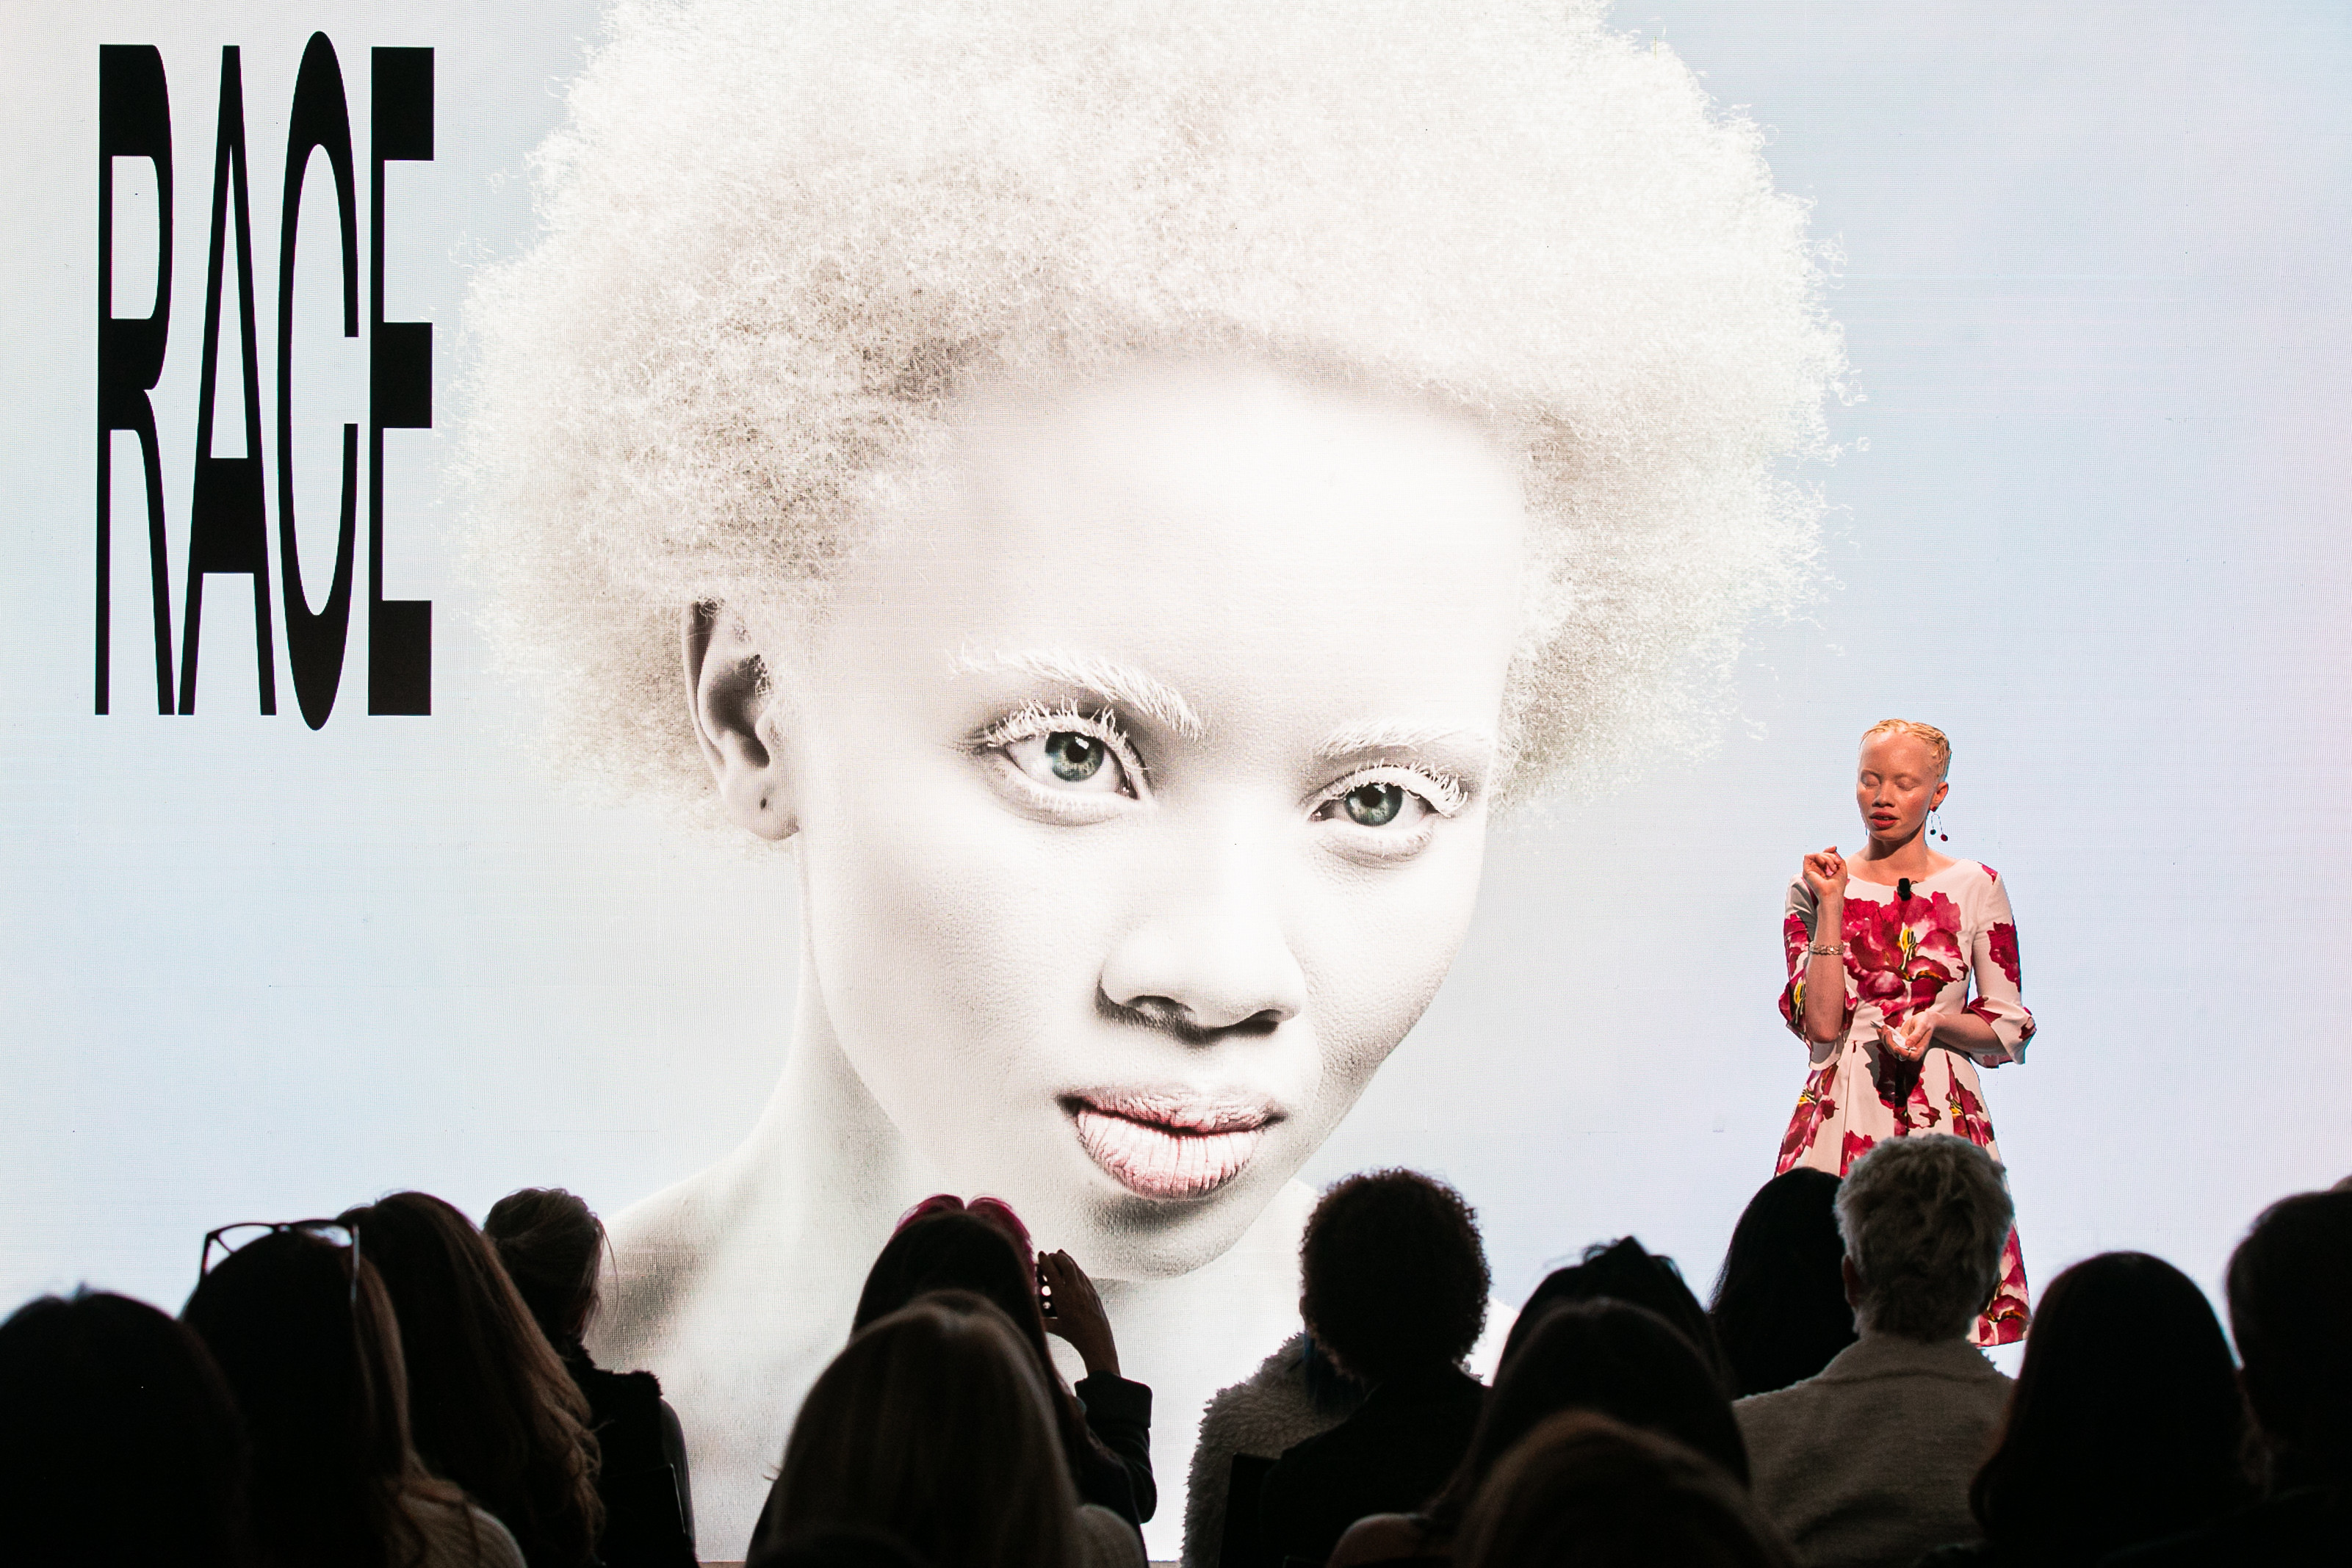 Thando Hopa, Diversity Advocate and International Model, Thando Hopa Media, South Africa; Cultural Leader, speaking during the session The Beauty of Inclusion at the World Economic Forum Annual Meeting 2020 in Davos-Klosters, Switzerland, 22nd of January. Congress Centre - in Betazone Copyright by